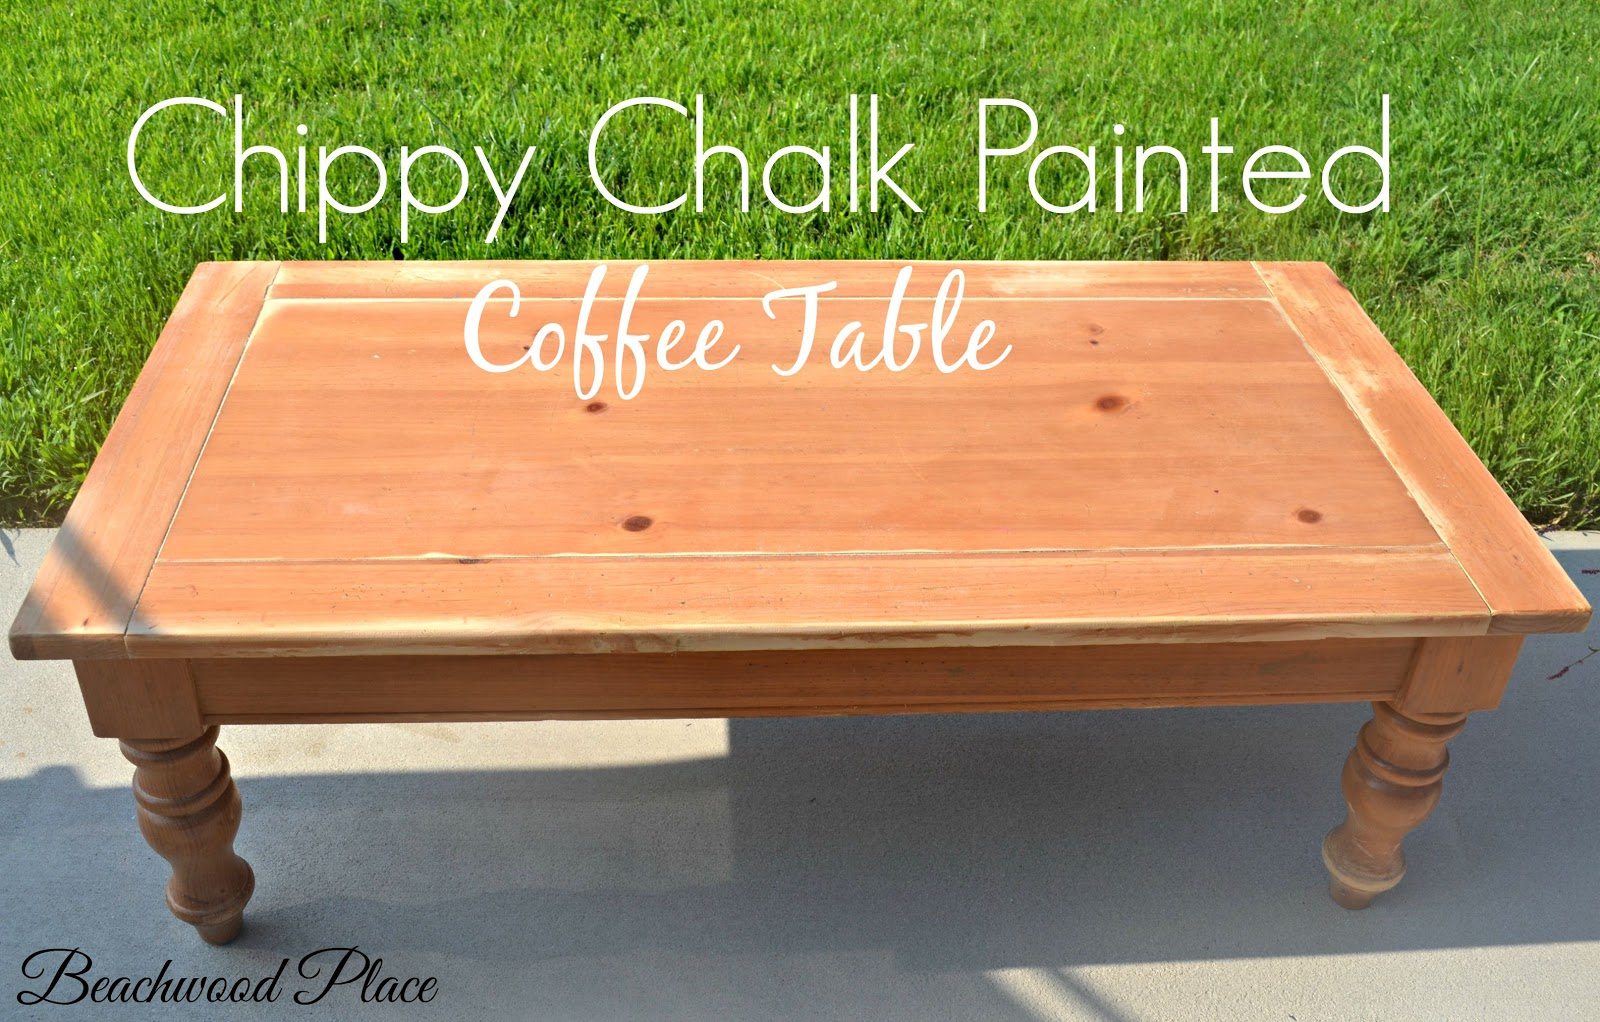 beachwood place: chippy chalk painted tables